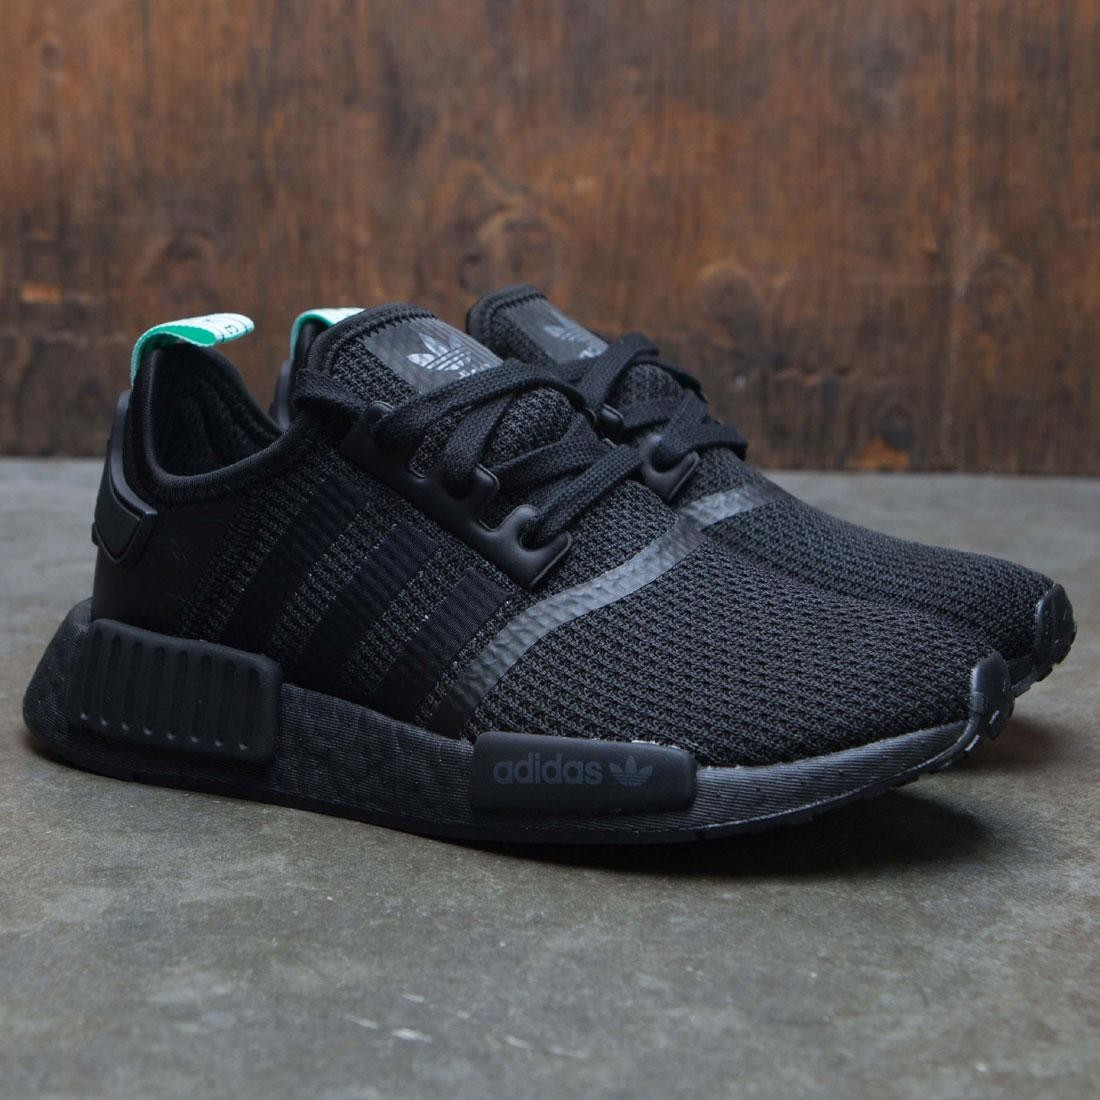 a57bfa00e3749 Adidas Women NMD R1 W (black   core black   clear mint)